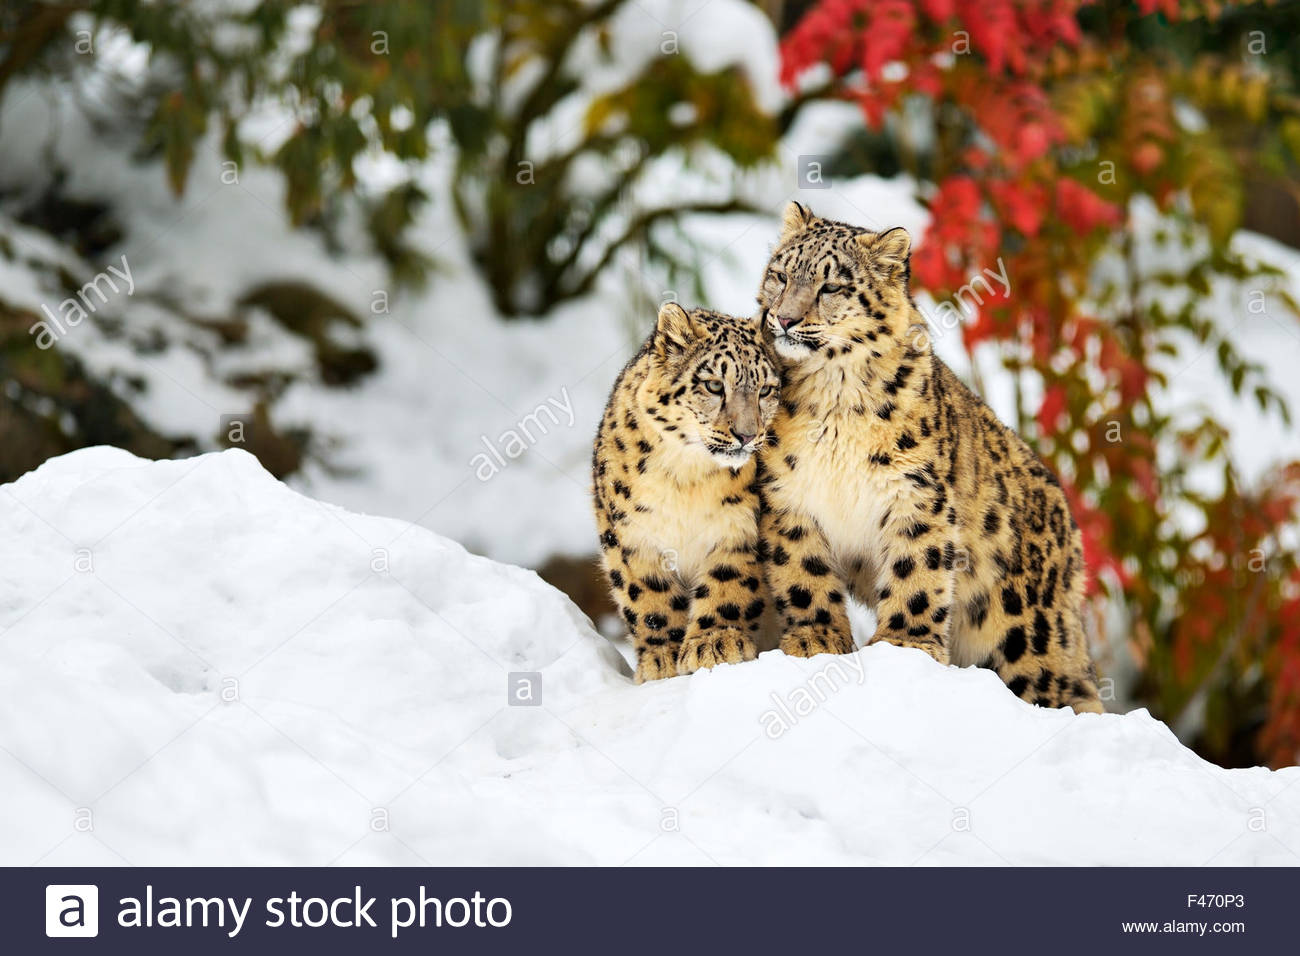 Two young snow leopards (Panthera uncia) sitting in the snow, captive, Canton of Zurich, Switzerland - Stock Image